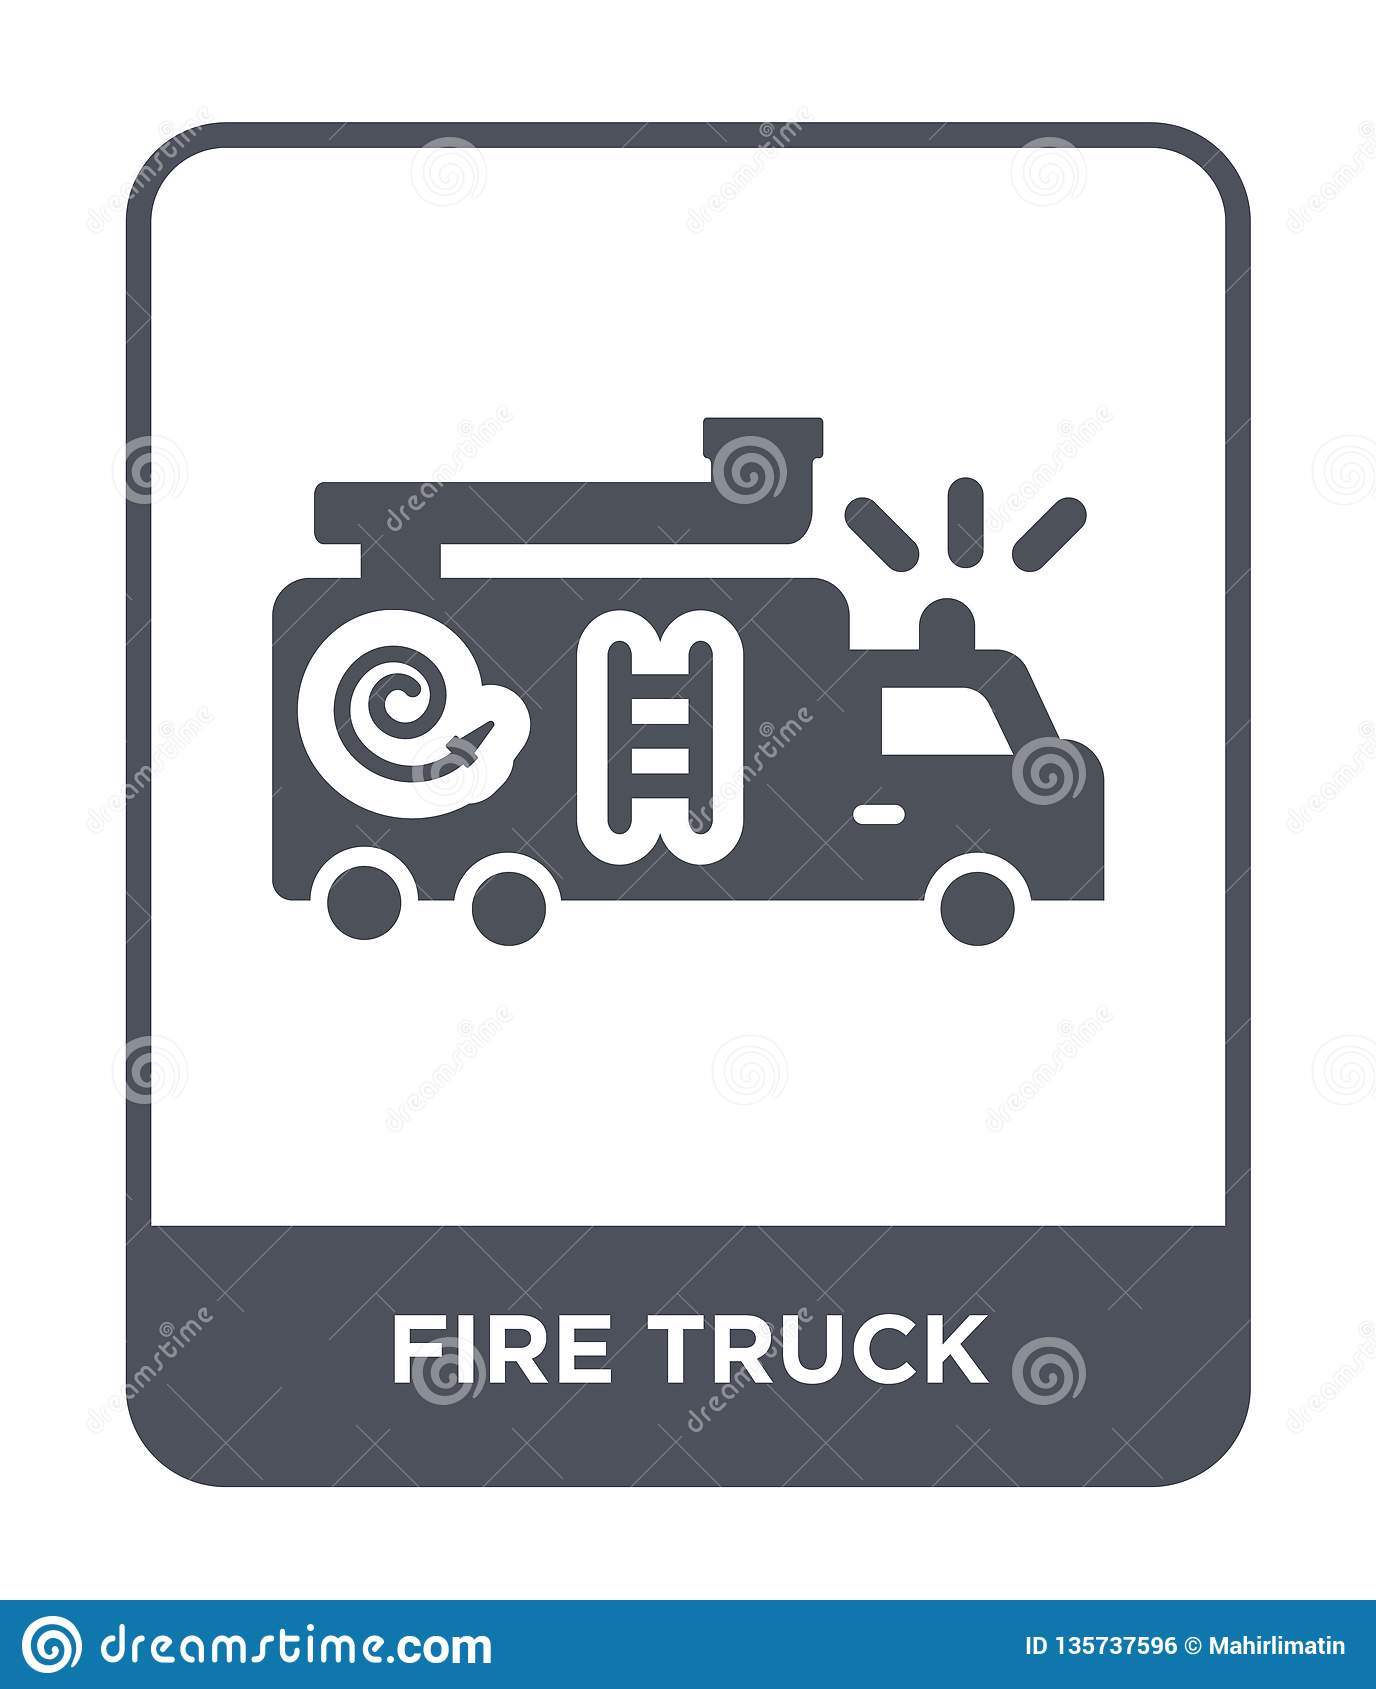 fire truck icon in trendy design style. fire truck icon isolated on white background. fire truck vector icon simple and modern